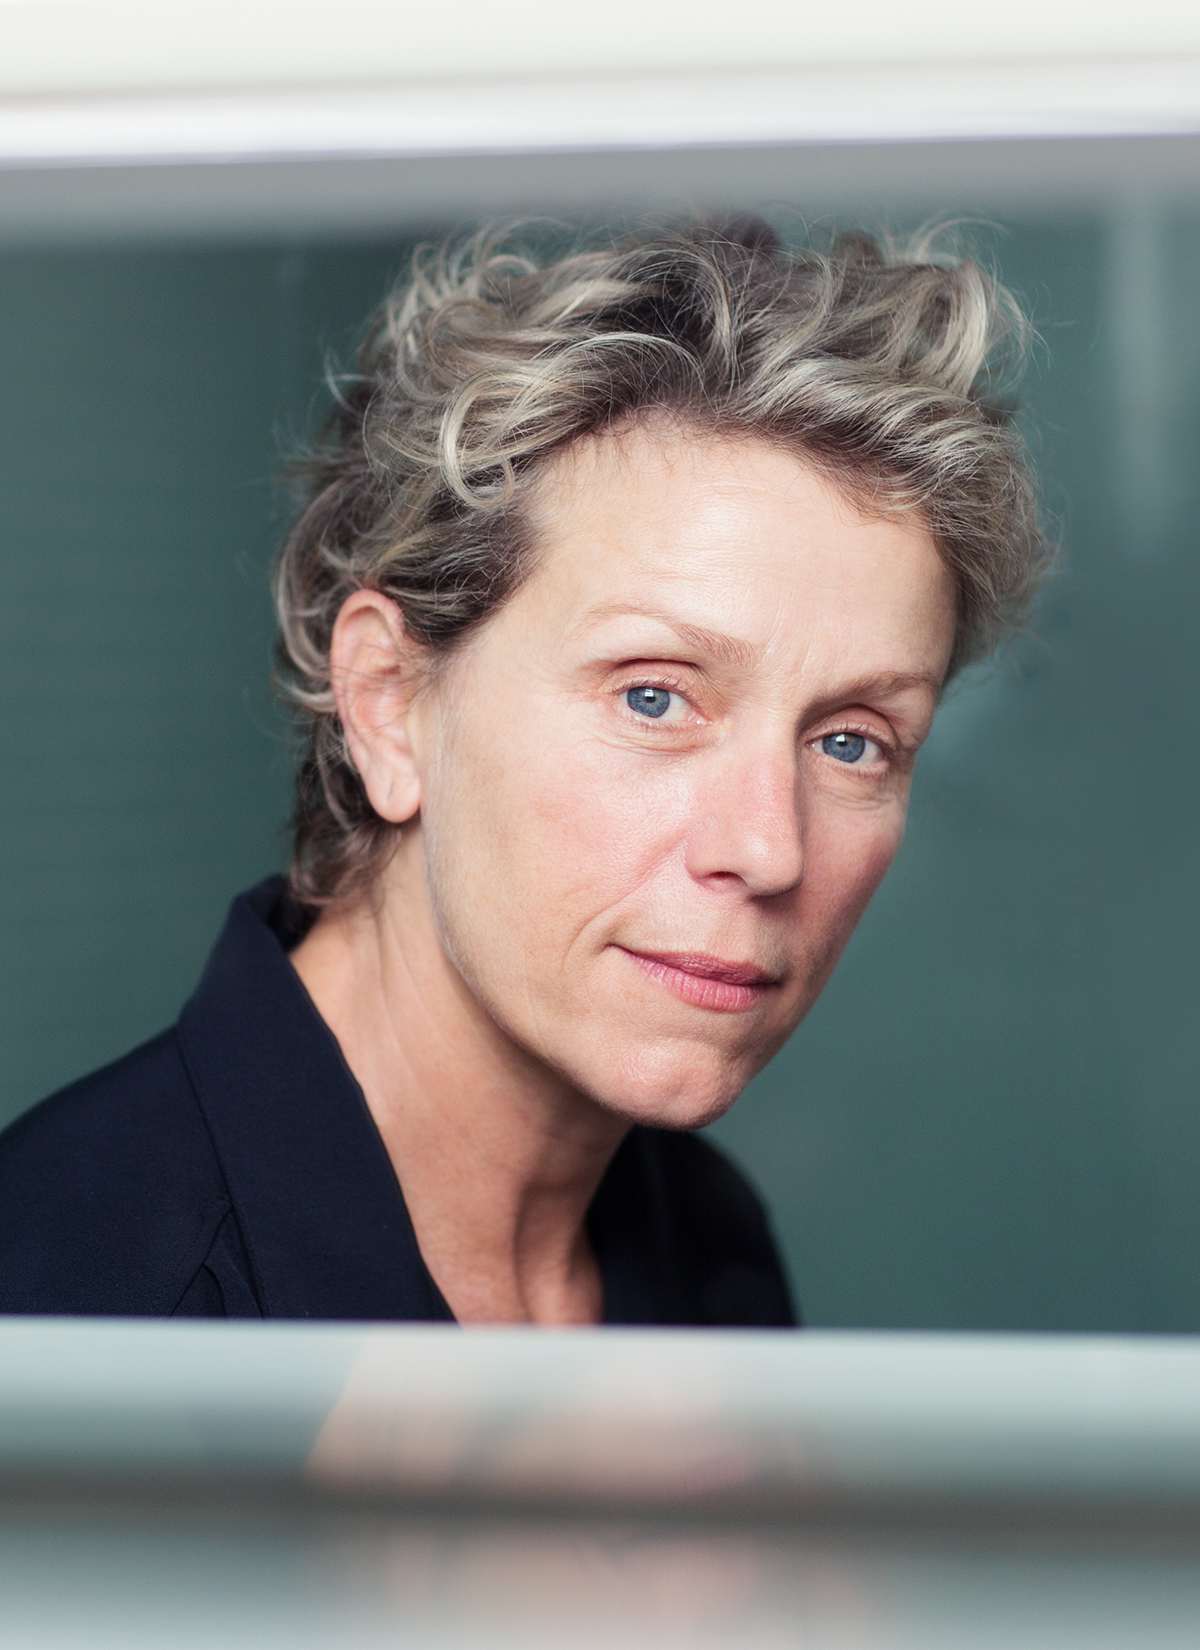 Frances-mcdormand-by-alison-rosa_small